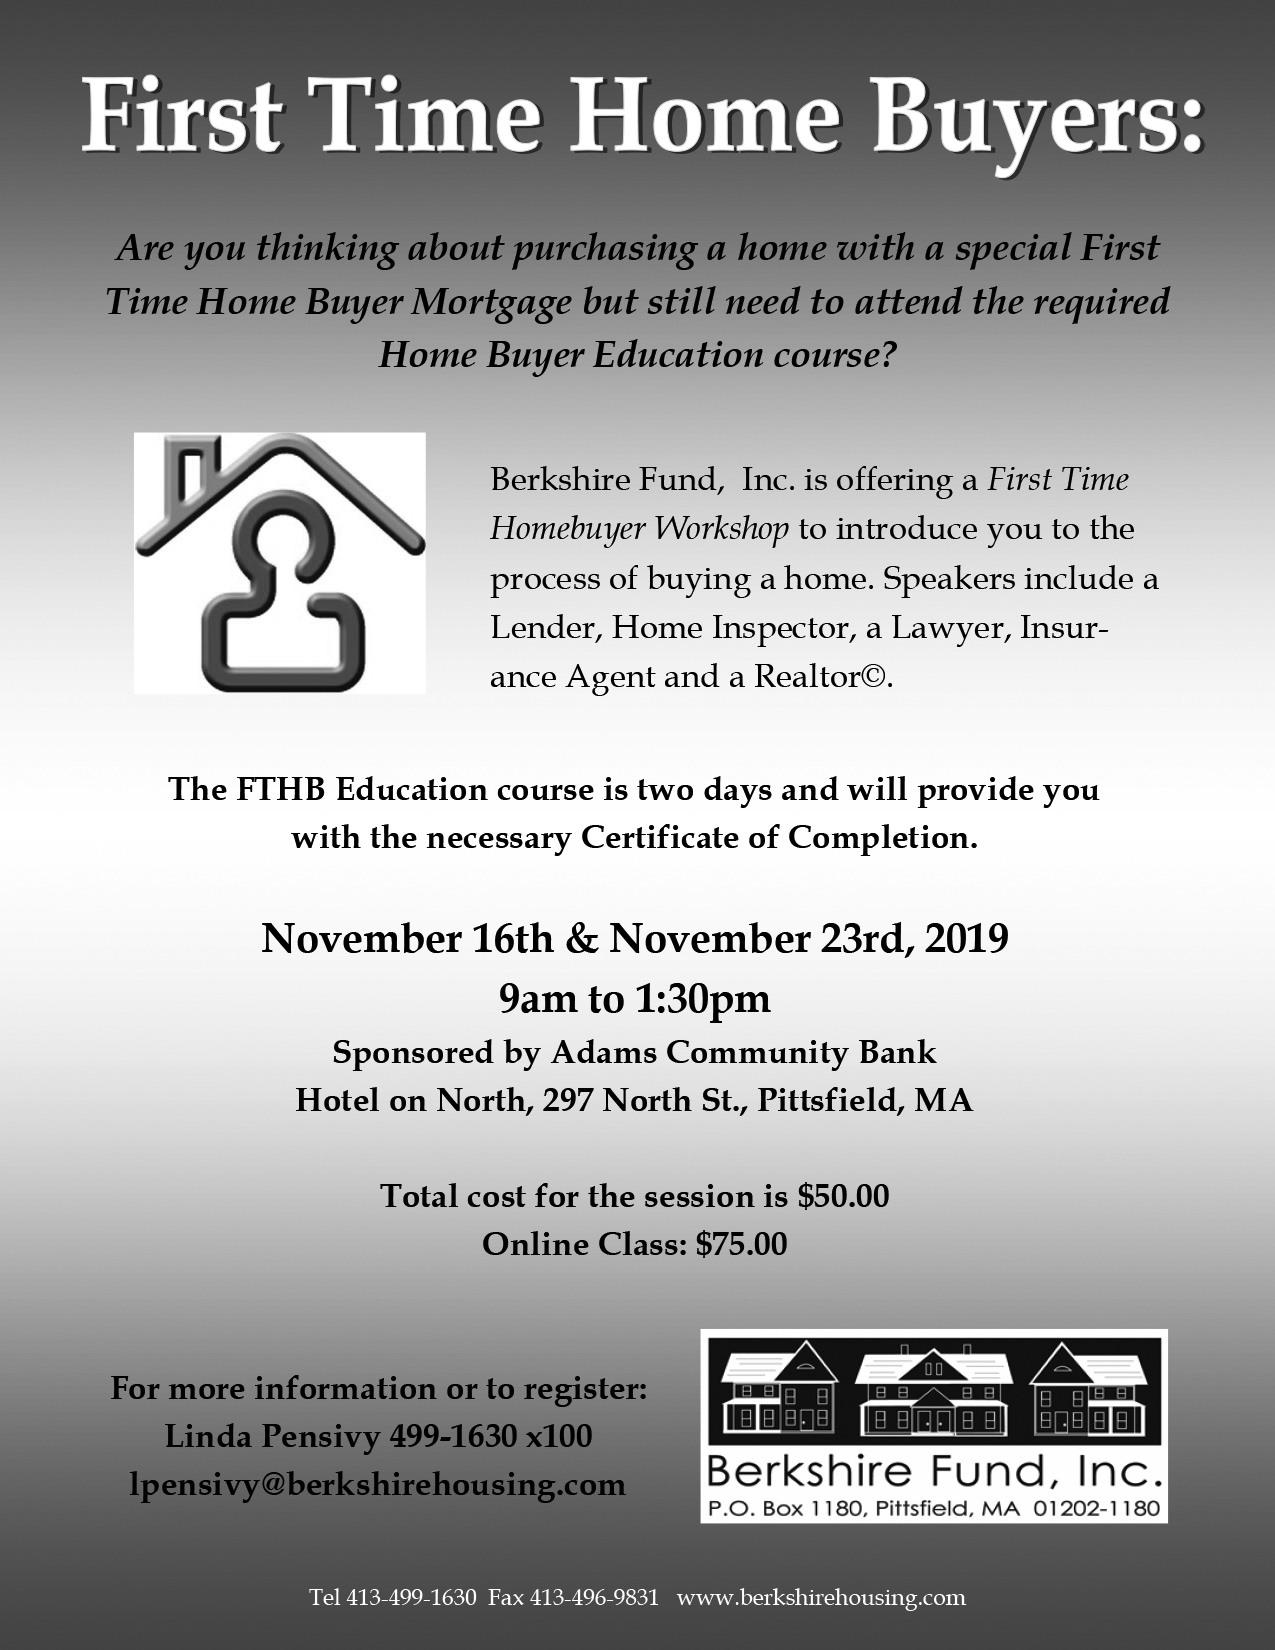 First Time Home Buyers.Are you thinking about purchasing a home with a special First Time Home Buyer Mortgage but still need to attend the required Home Buyer Education course? Berkshire Fund,  Inc. is offering a First Time Homebuyer Workshop to introduce you to the process of buying a home. Speakers include a Lender, Home Inspector, a Lawyer, Insurance Agent and a Realtor.The FTHB Education course is two days and will provide you with the necessary Certificate of Completion. November 16th & November 23rd, 2019 9am to 1:30pm Sponsored by Adams Community Bank Hotel on North, 297 North St., Pittsfield, MA Total cost for the session is $50.00 Online Class: $75.00